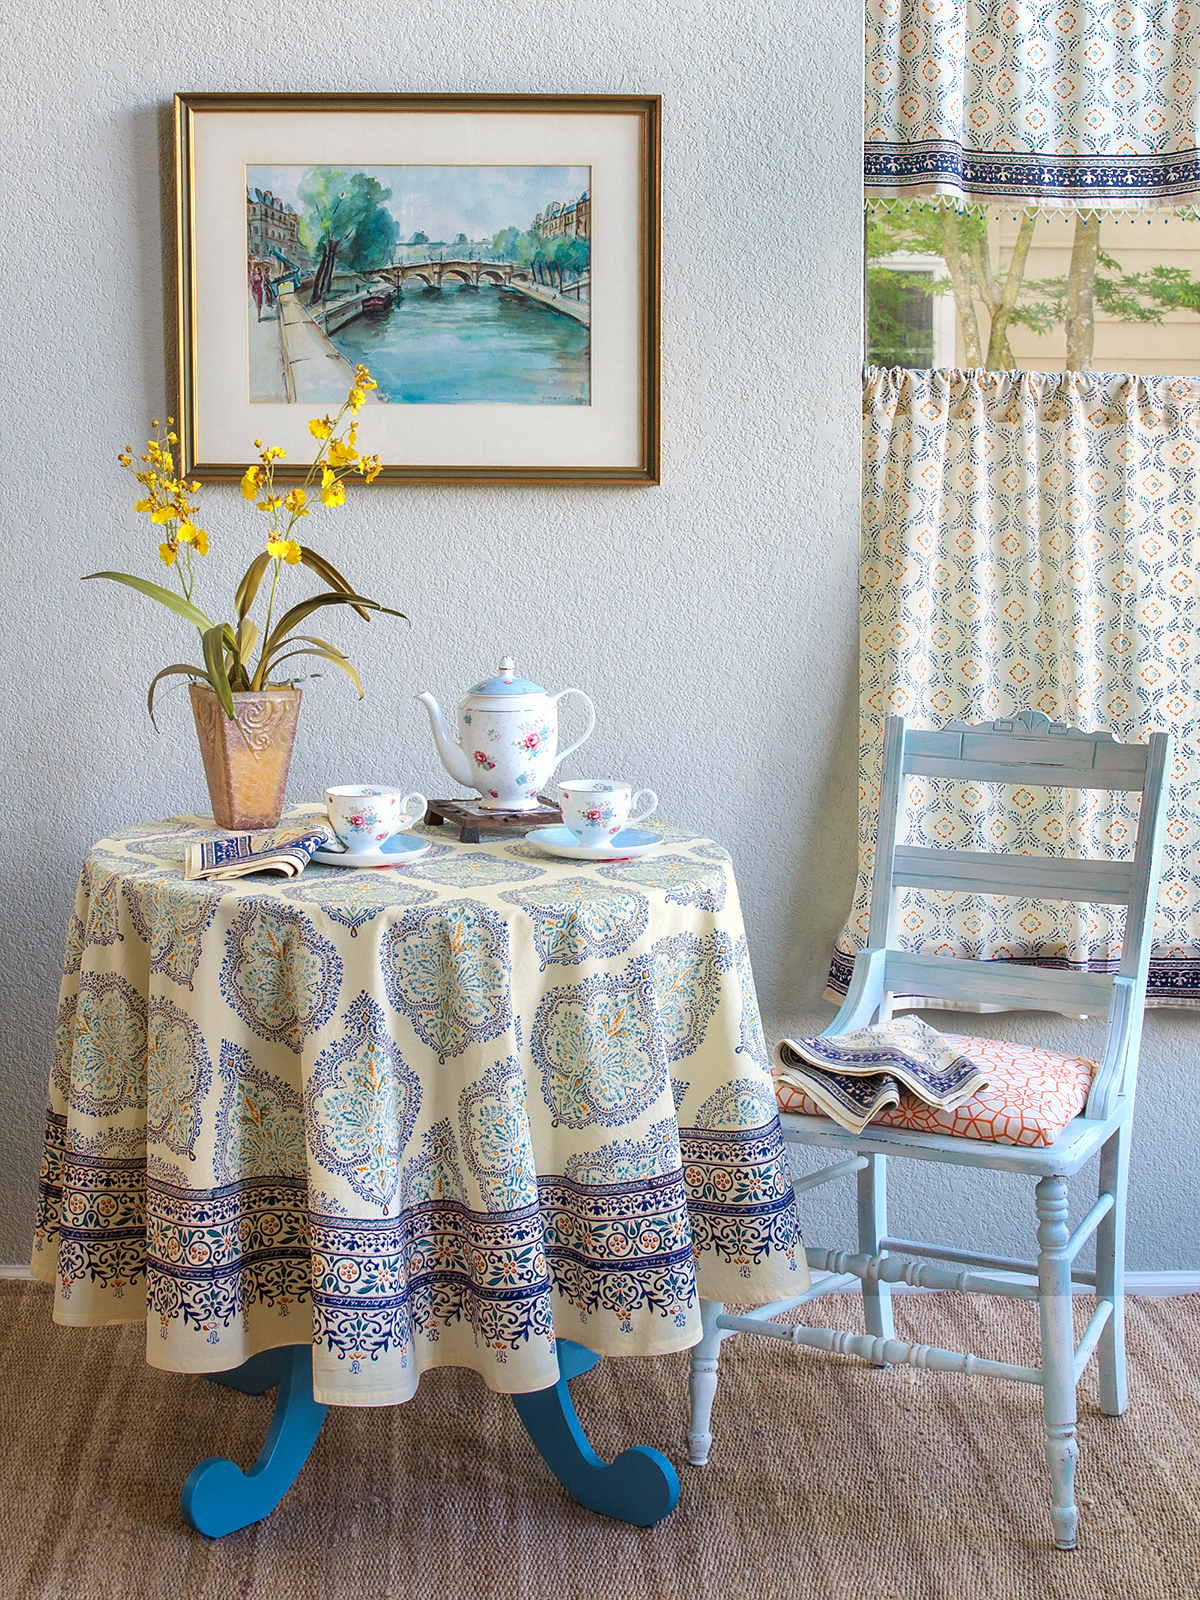 French Moroccan curtains and table linens for summery bohemian home decor